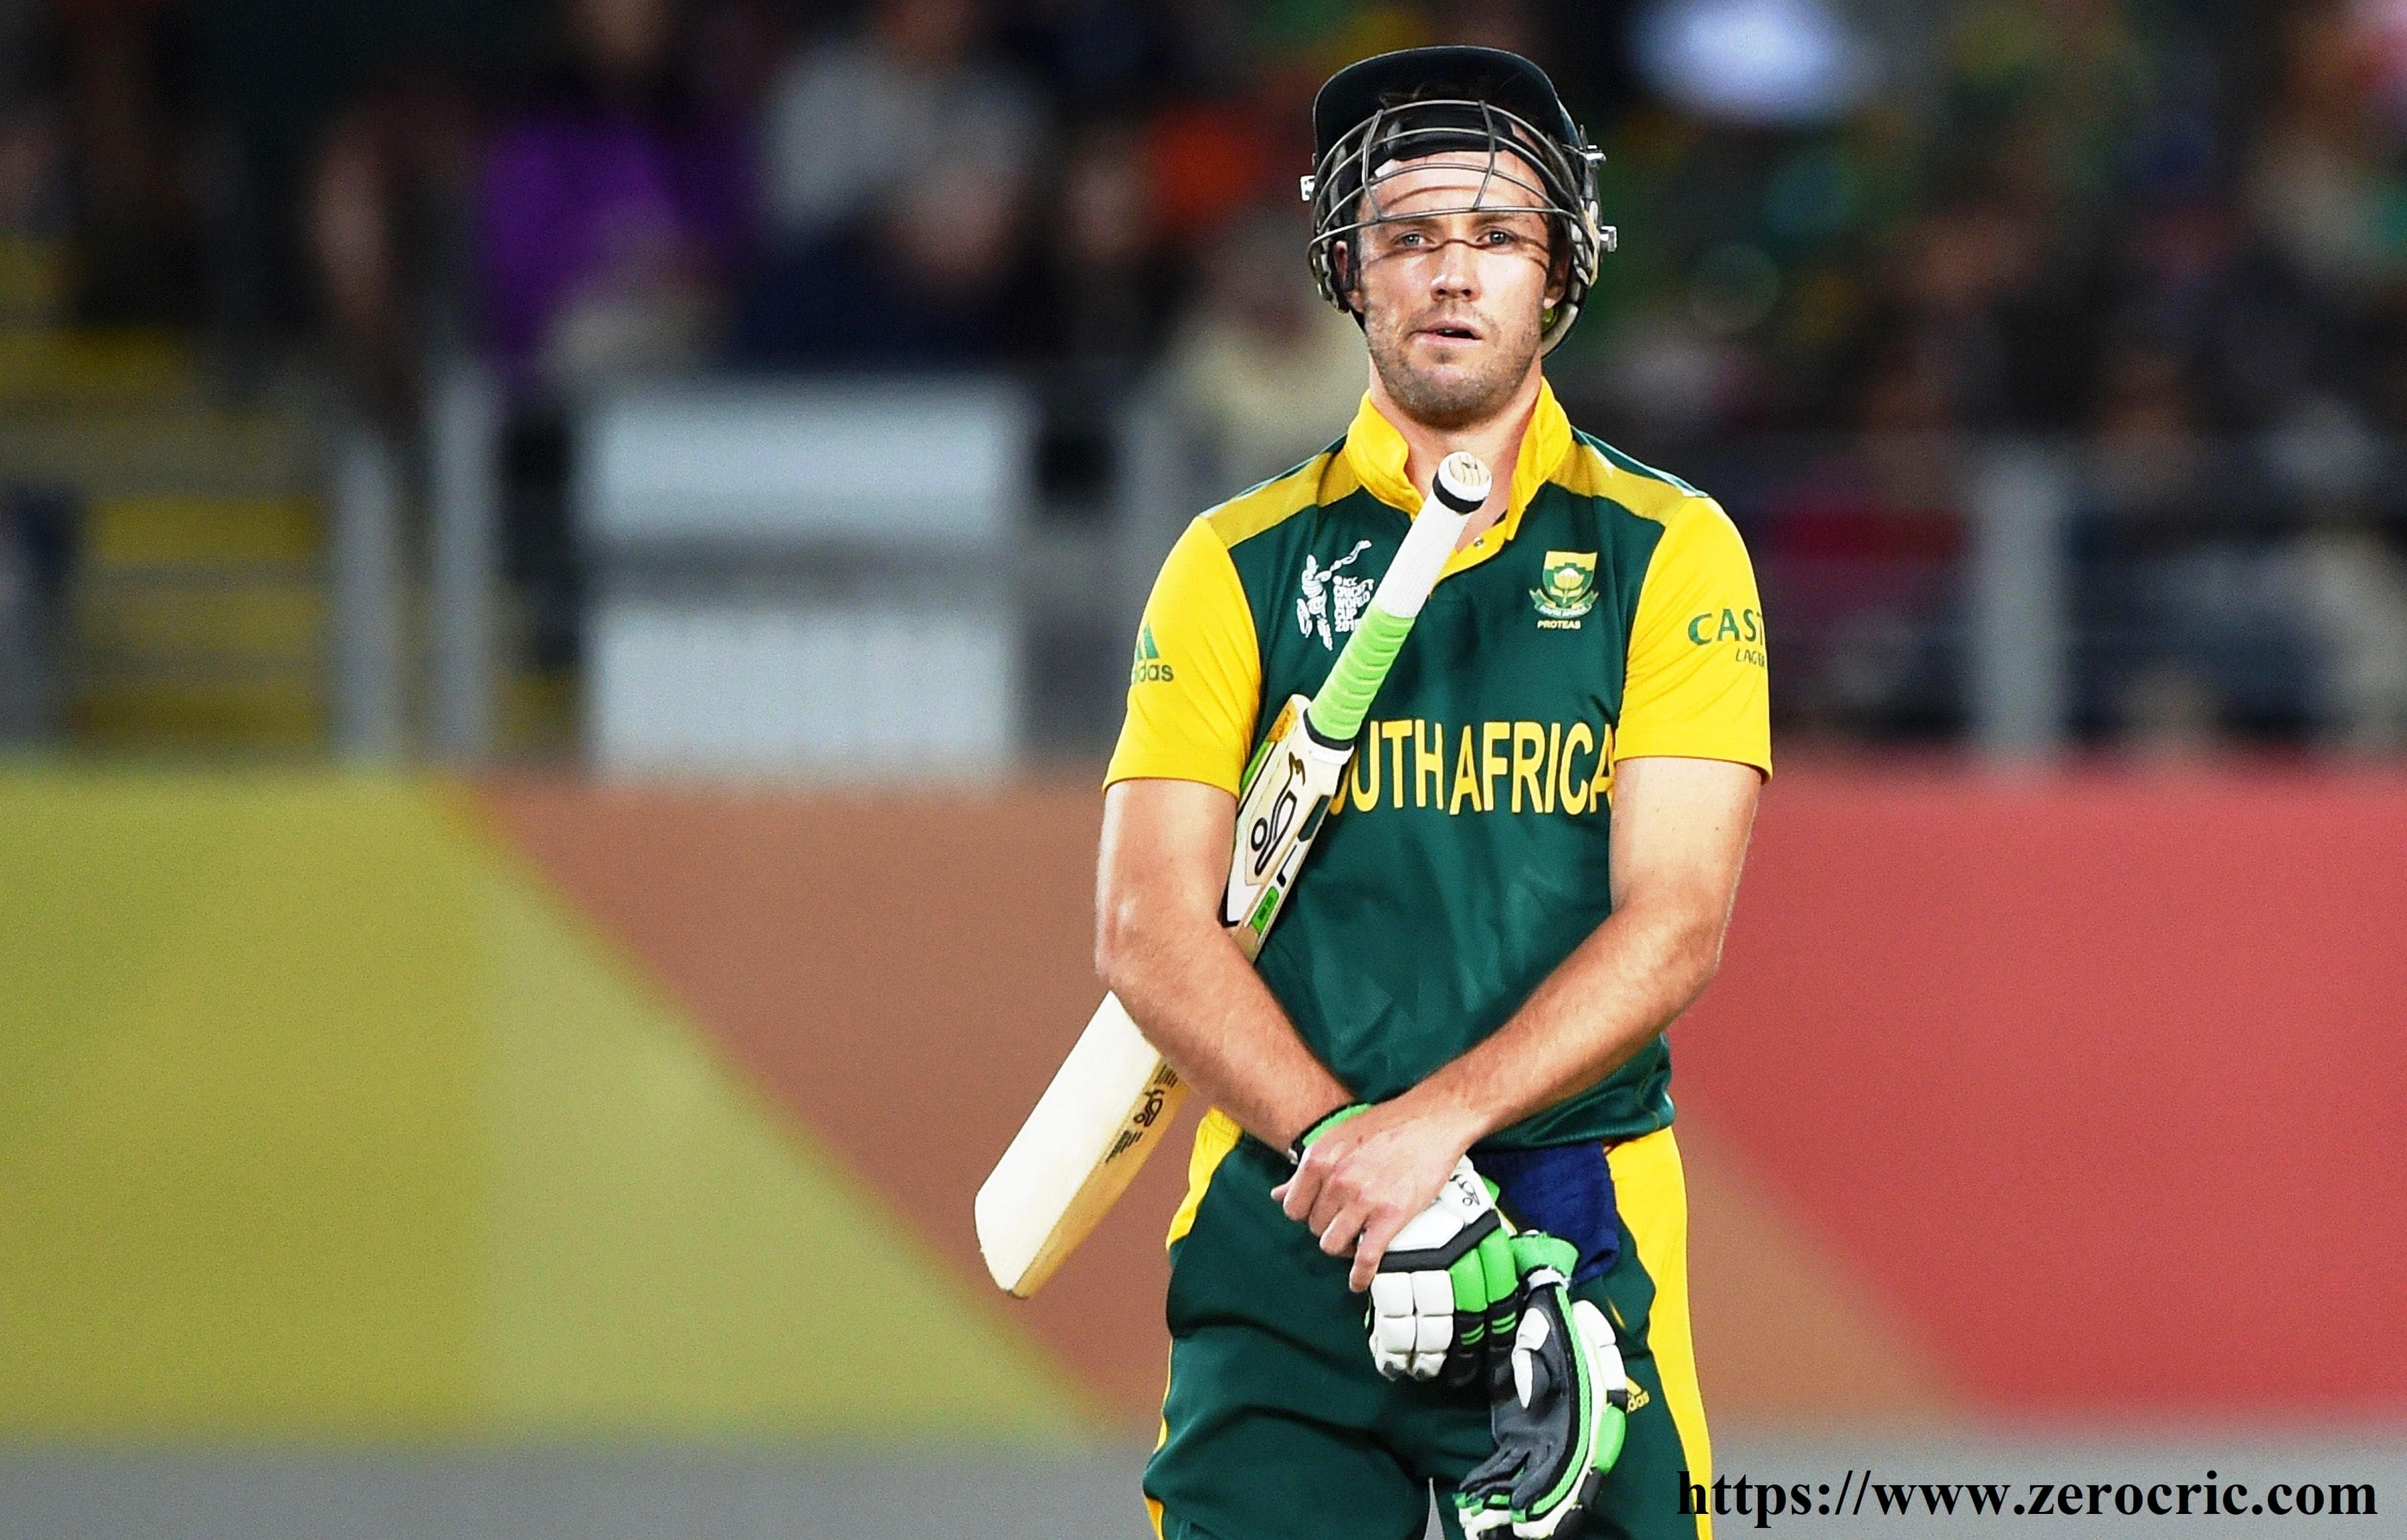 AB de Villiers don't perform in PSL 2020 to manage workload